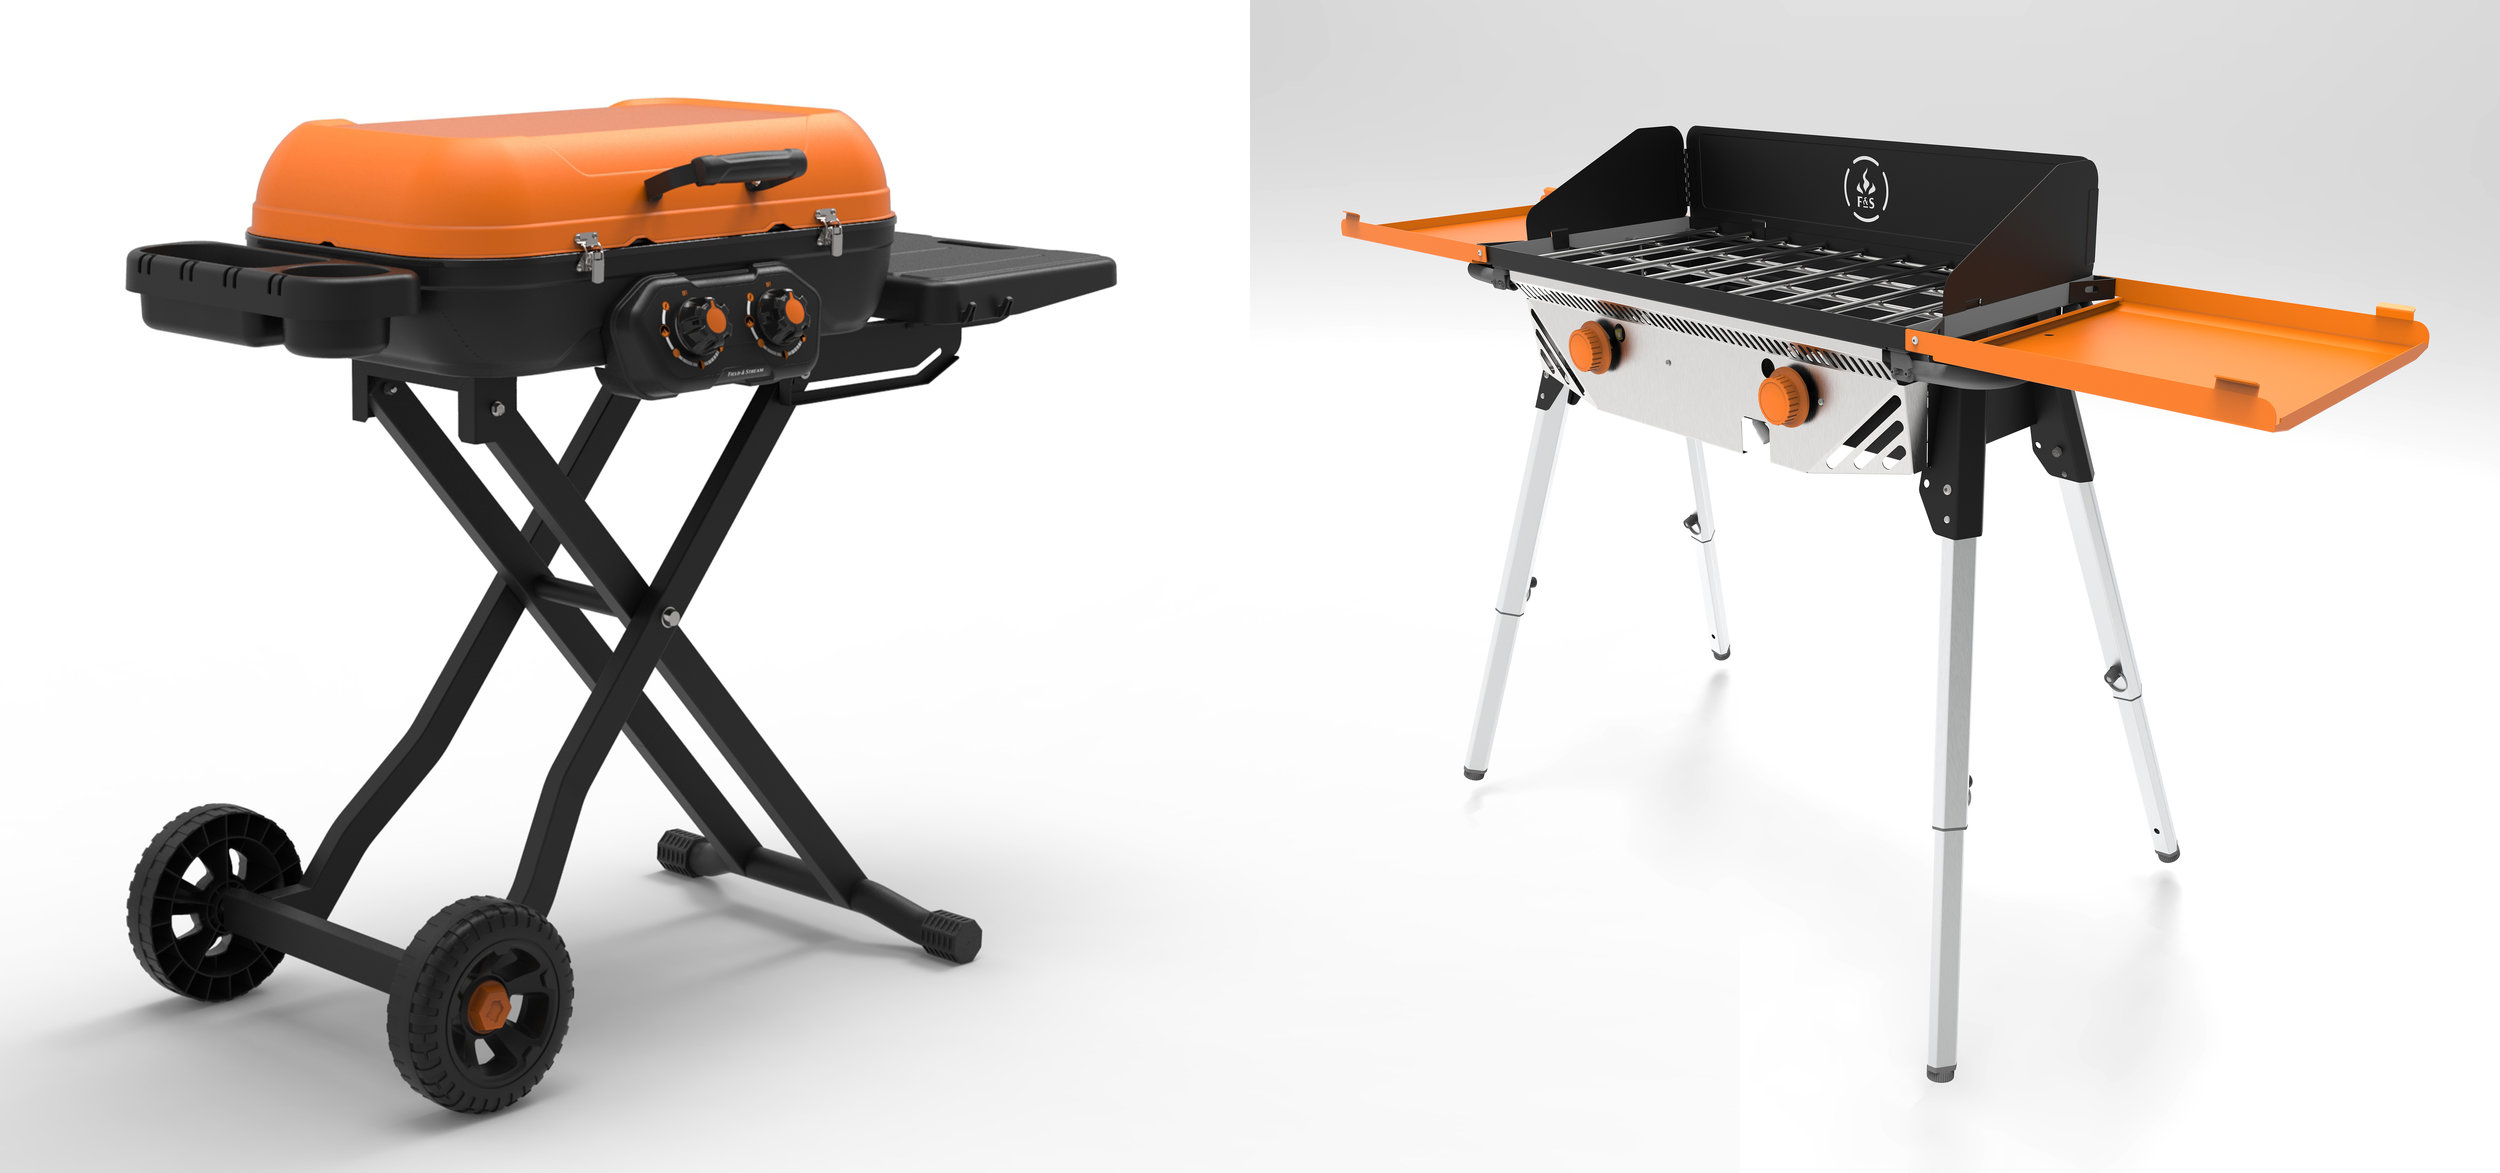 Field & Stream - Off Road Grill and Camp Stove